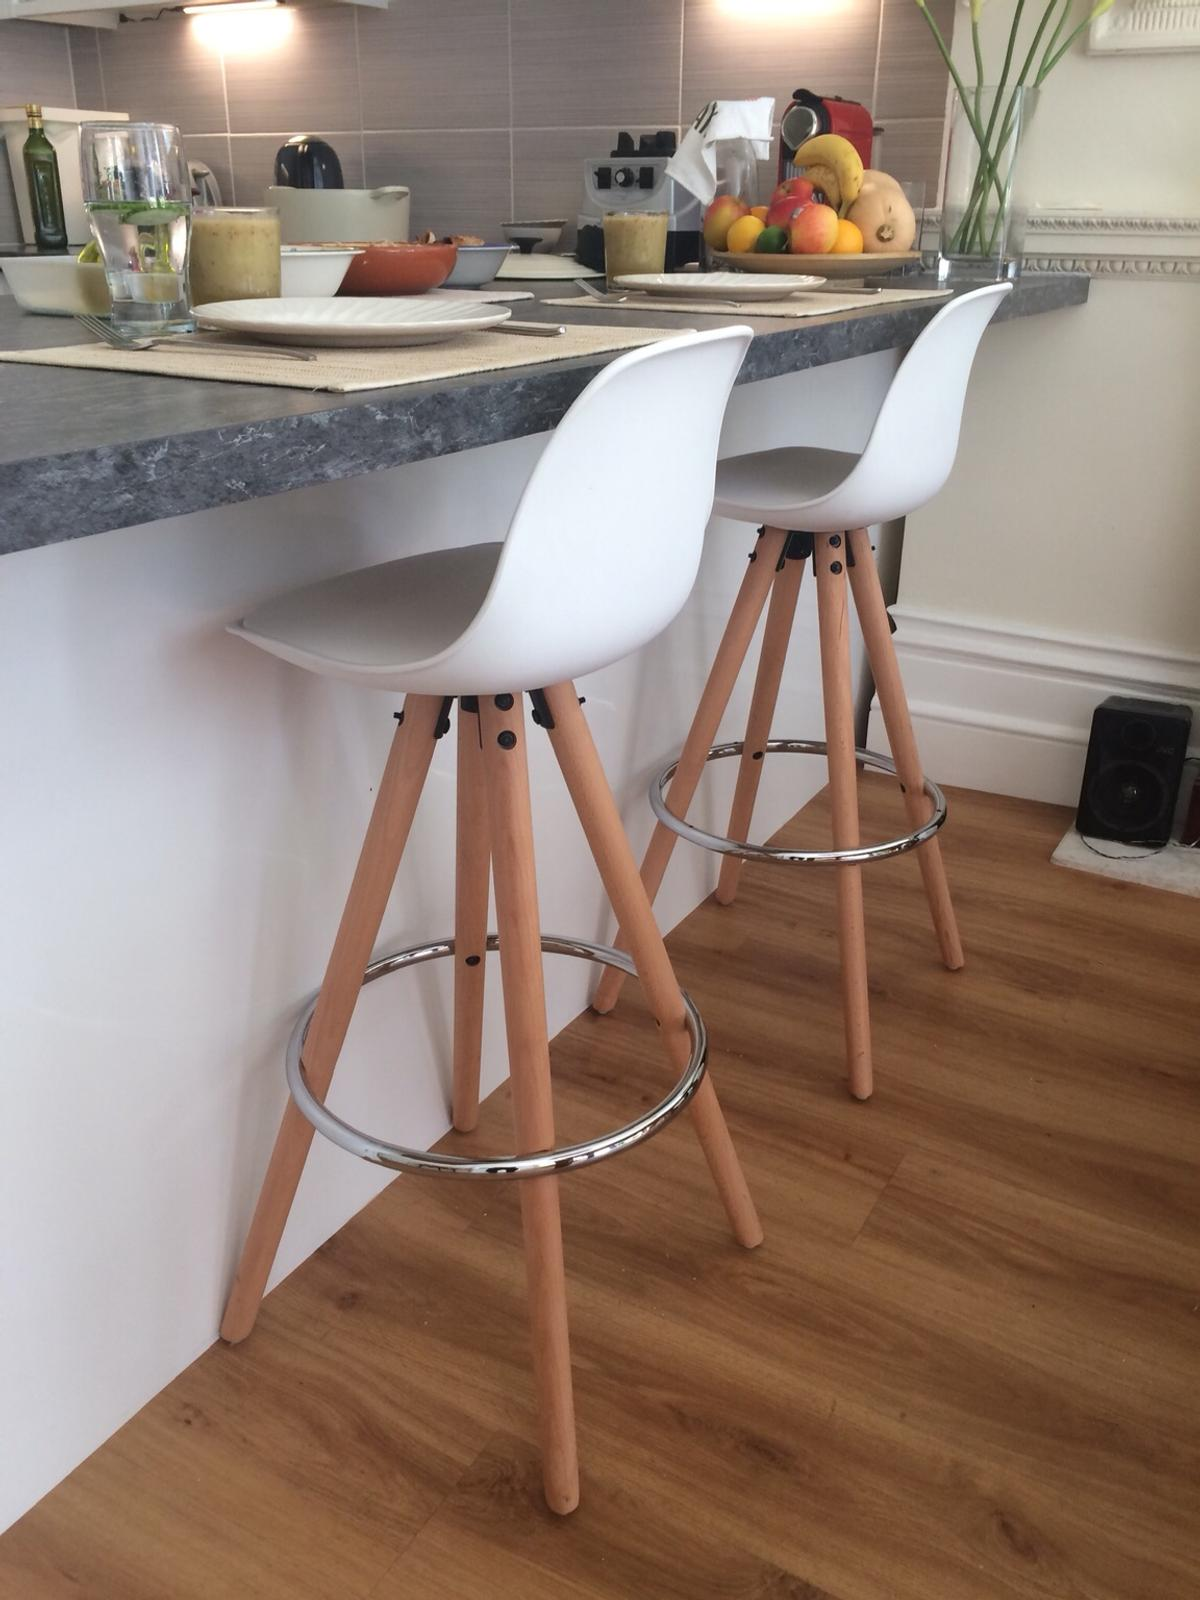 Sensational White Kitchen Counter Bar Stools In W8 Chelsea For 70 00 Theyellowbook Wood Chair Design Ideas Theyellowbookinfo